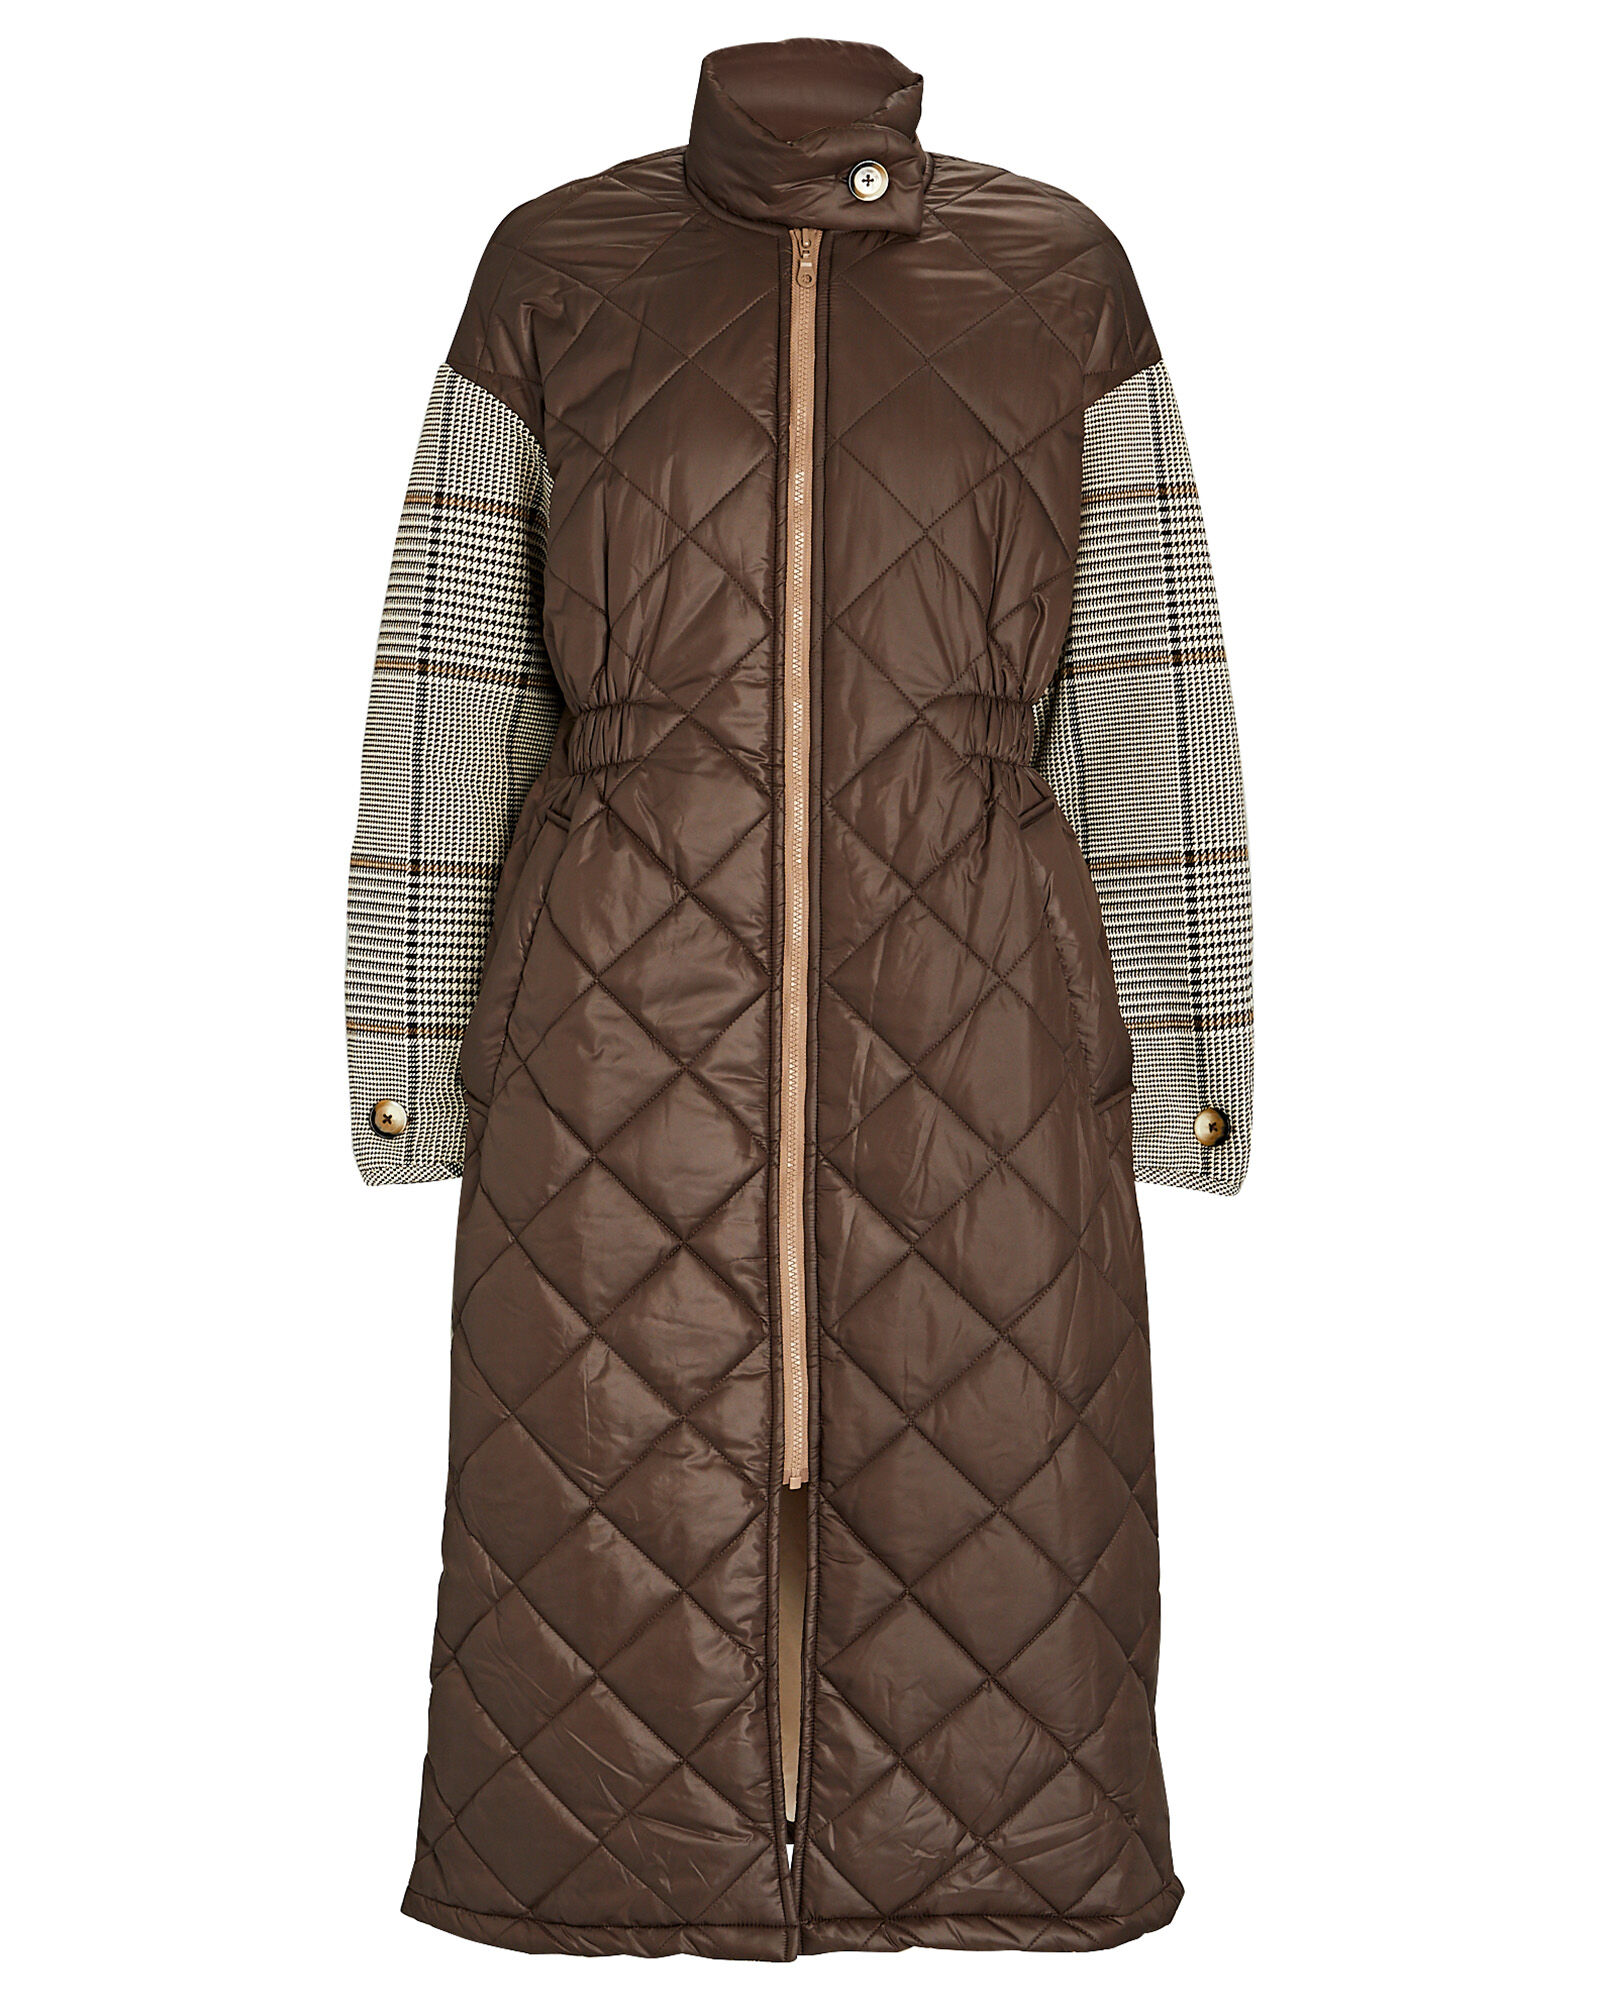 Deadra Quilted Plaid Puffer Coat, MULTI, hi-res